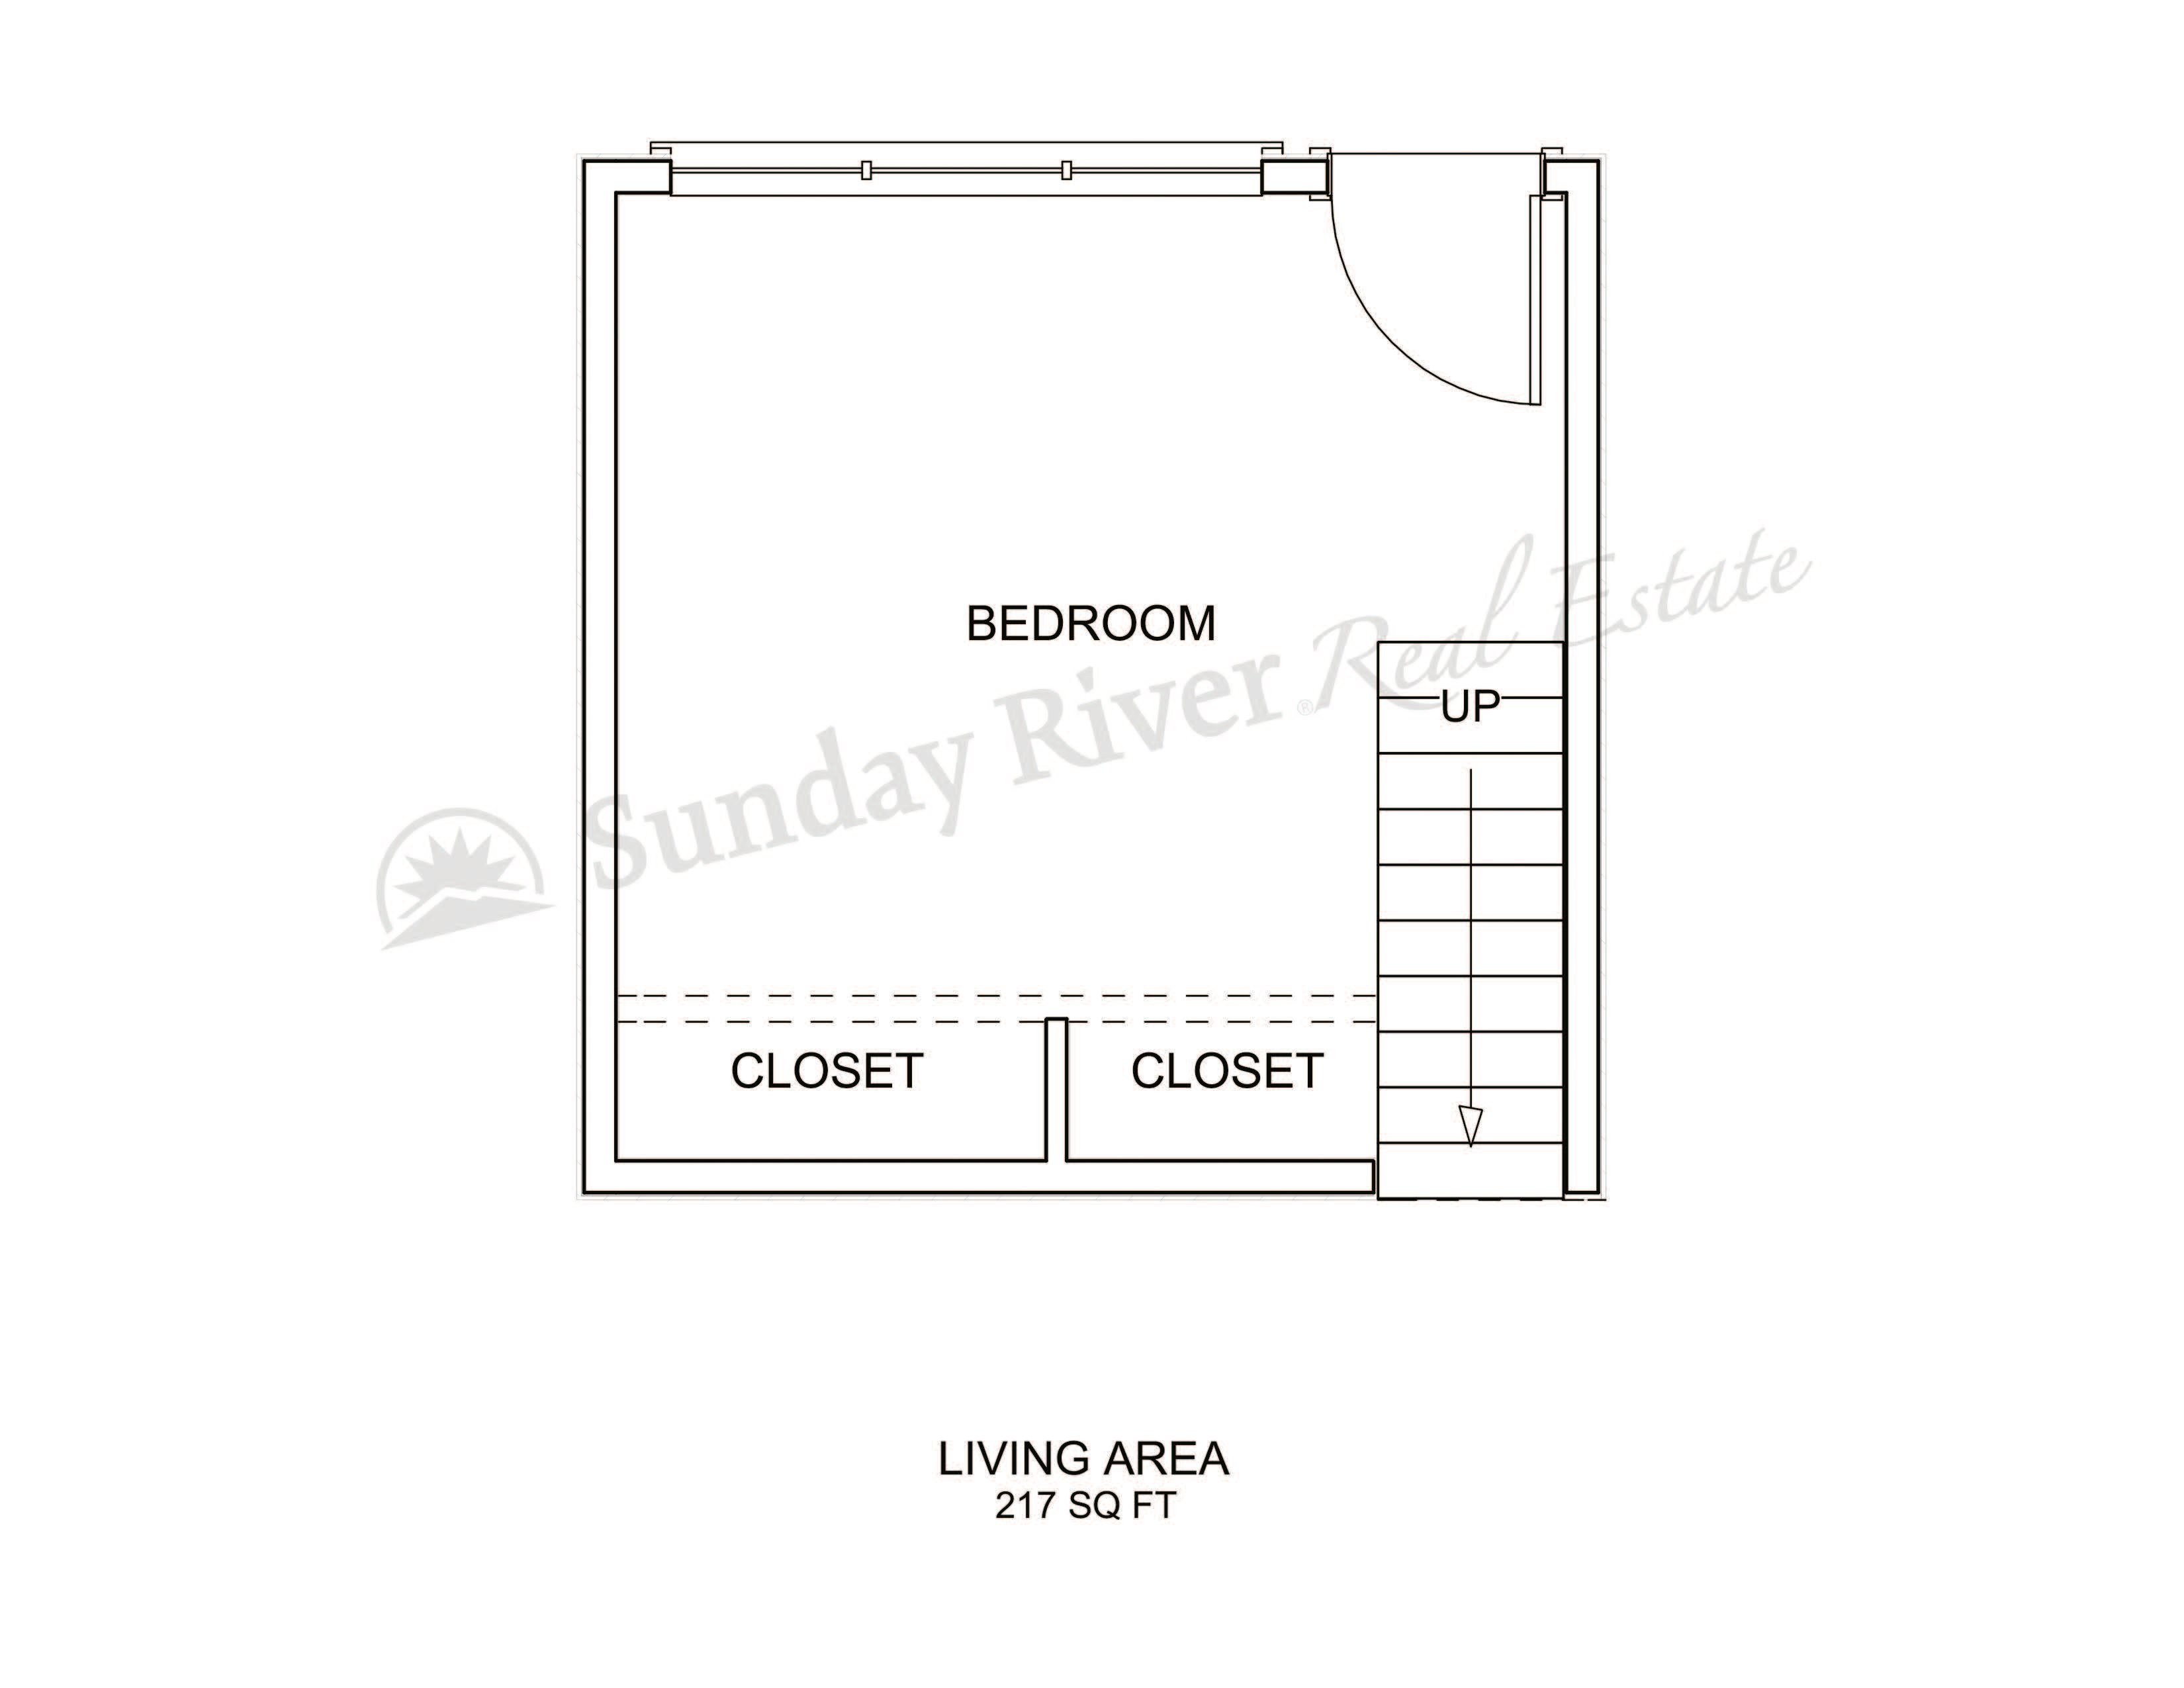 1-Bedroom Floor Plan with Lower Level - Bed